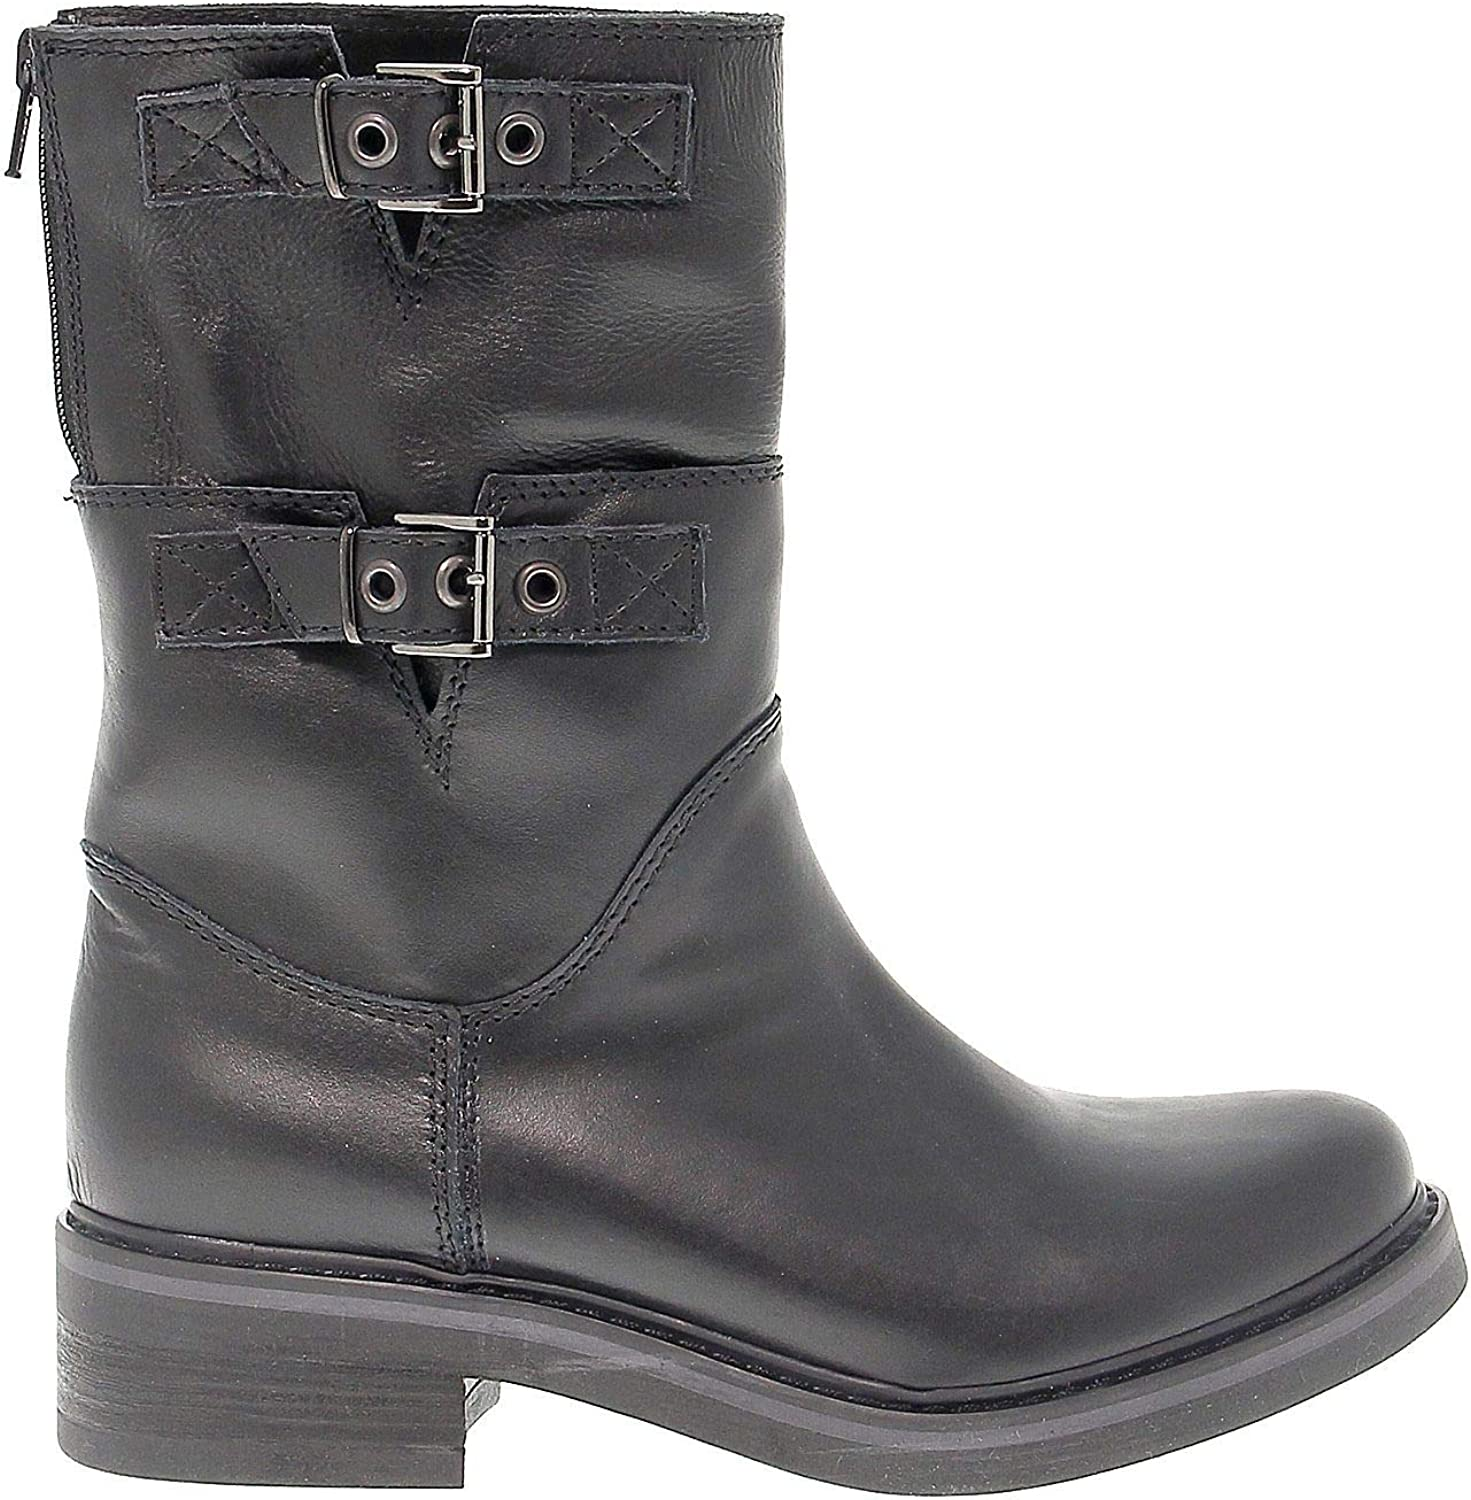 SAN CRISPINO Women's 234BLACK Black Leather Ankle Boots